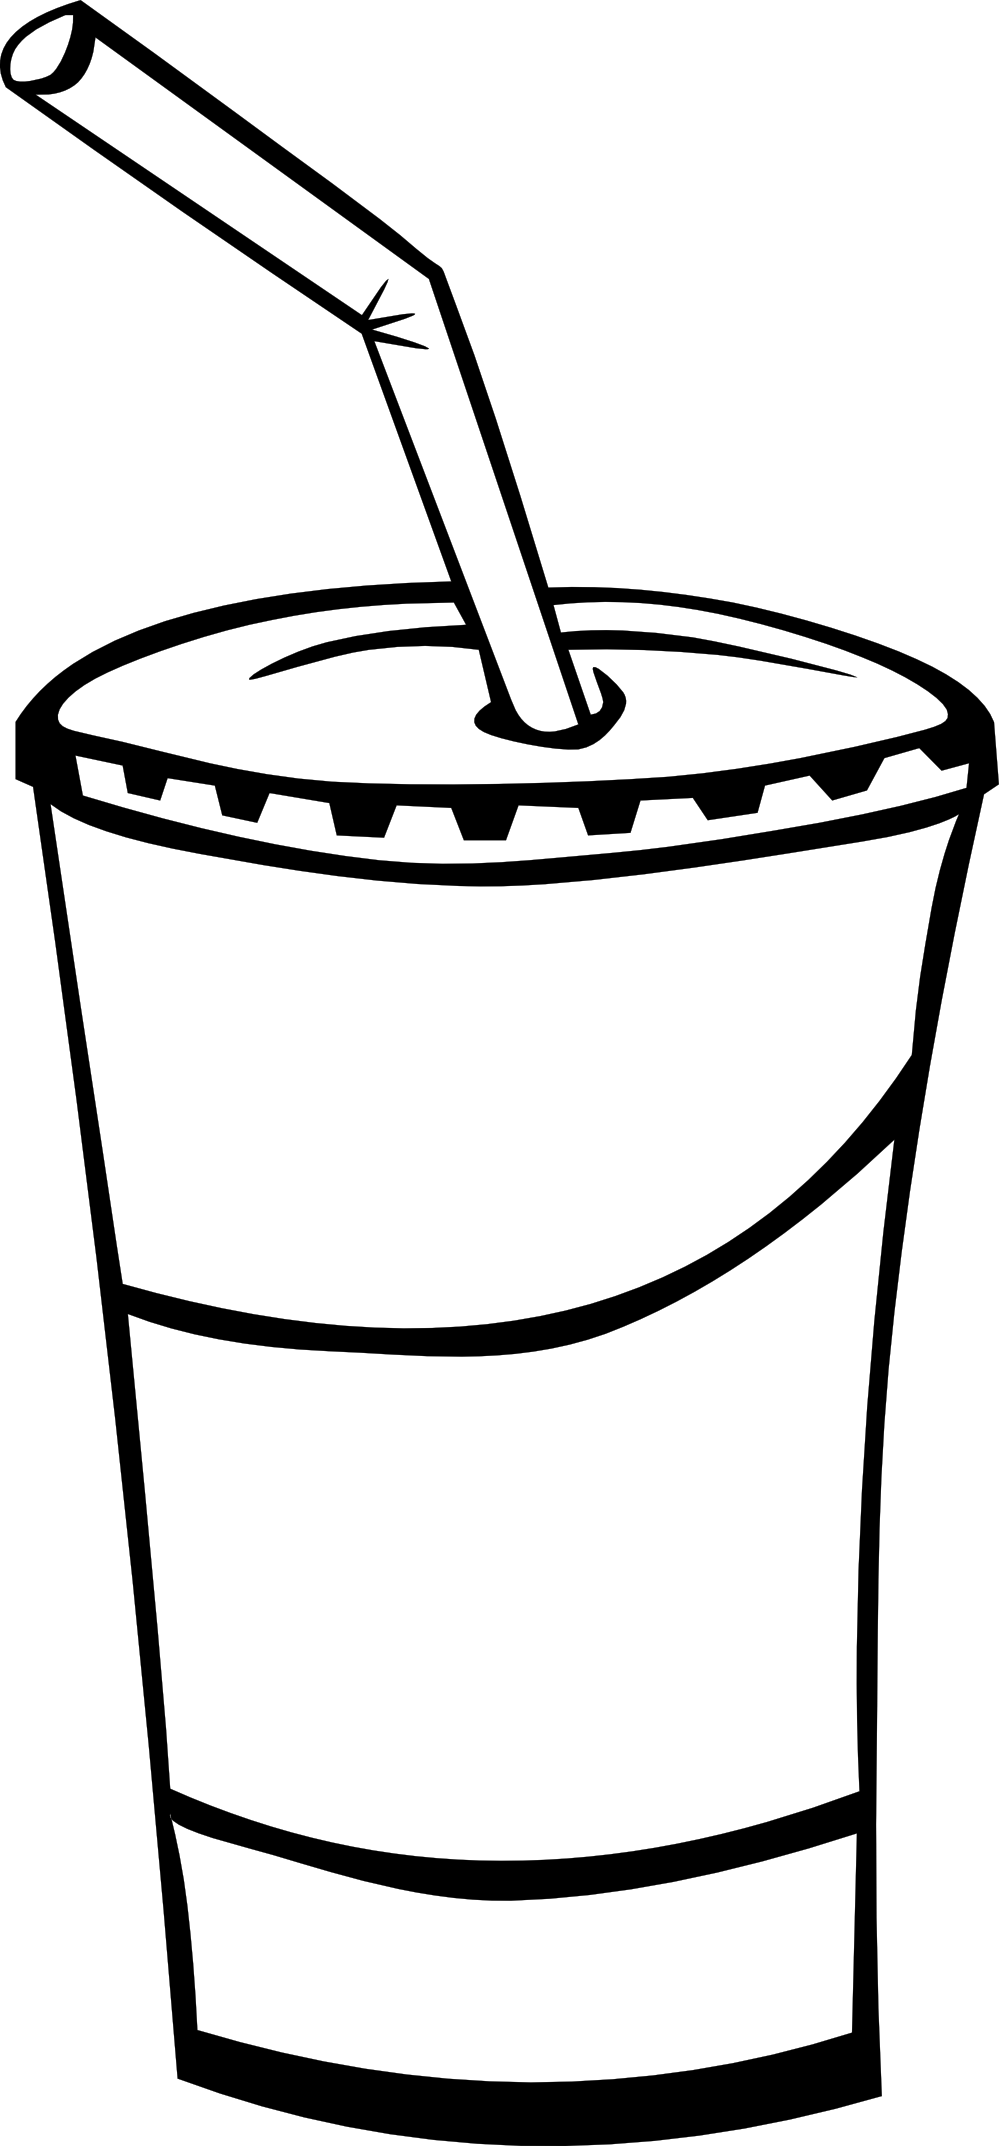 Drink clipart junk food Clipart junk%20food%20clipart%20black%20and%20white Clipart  Food